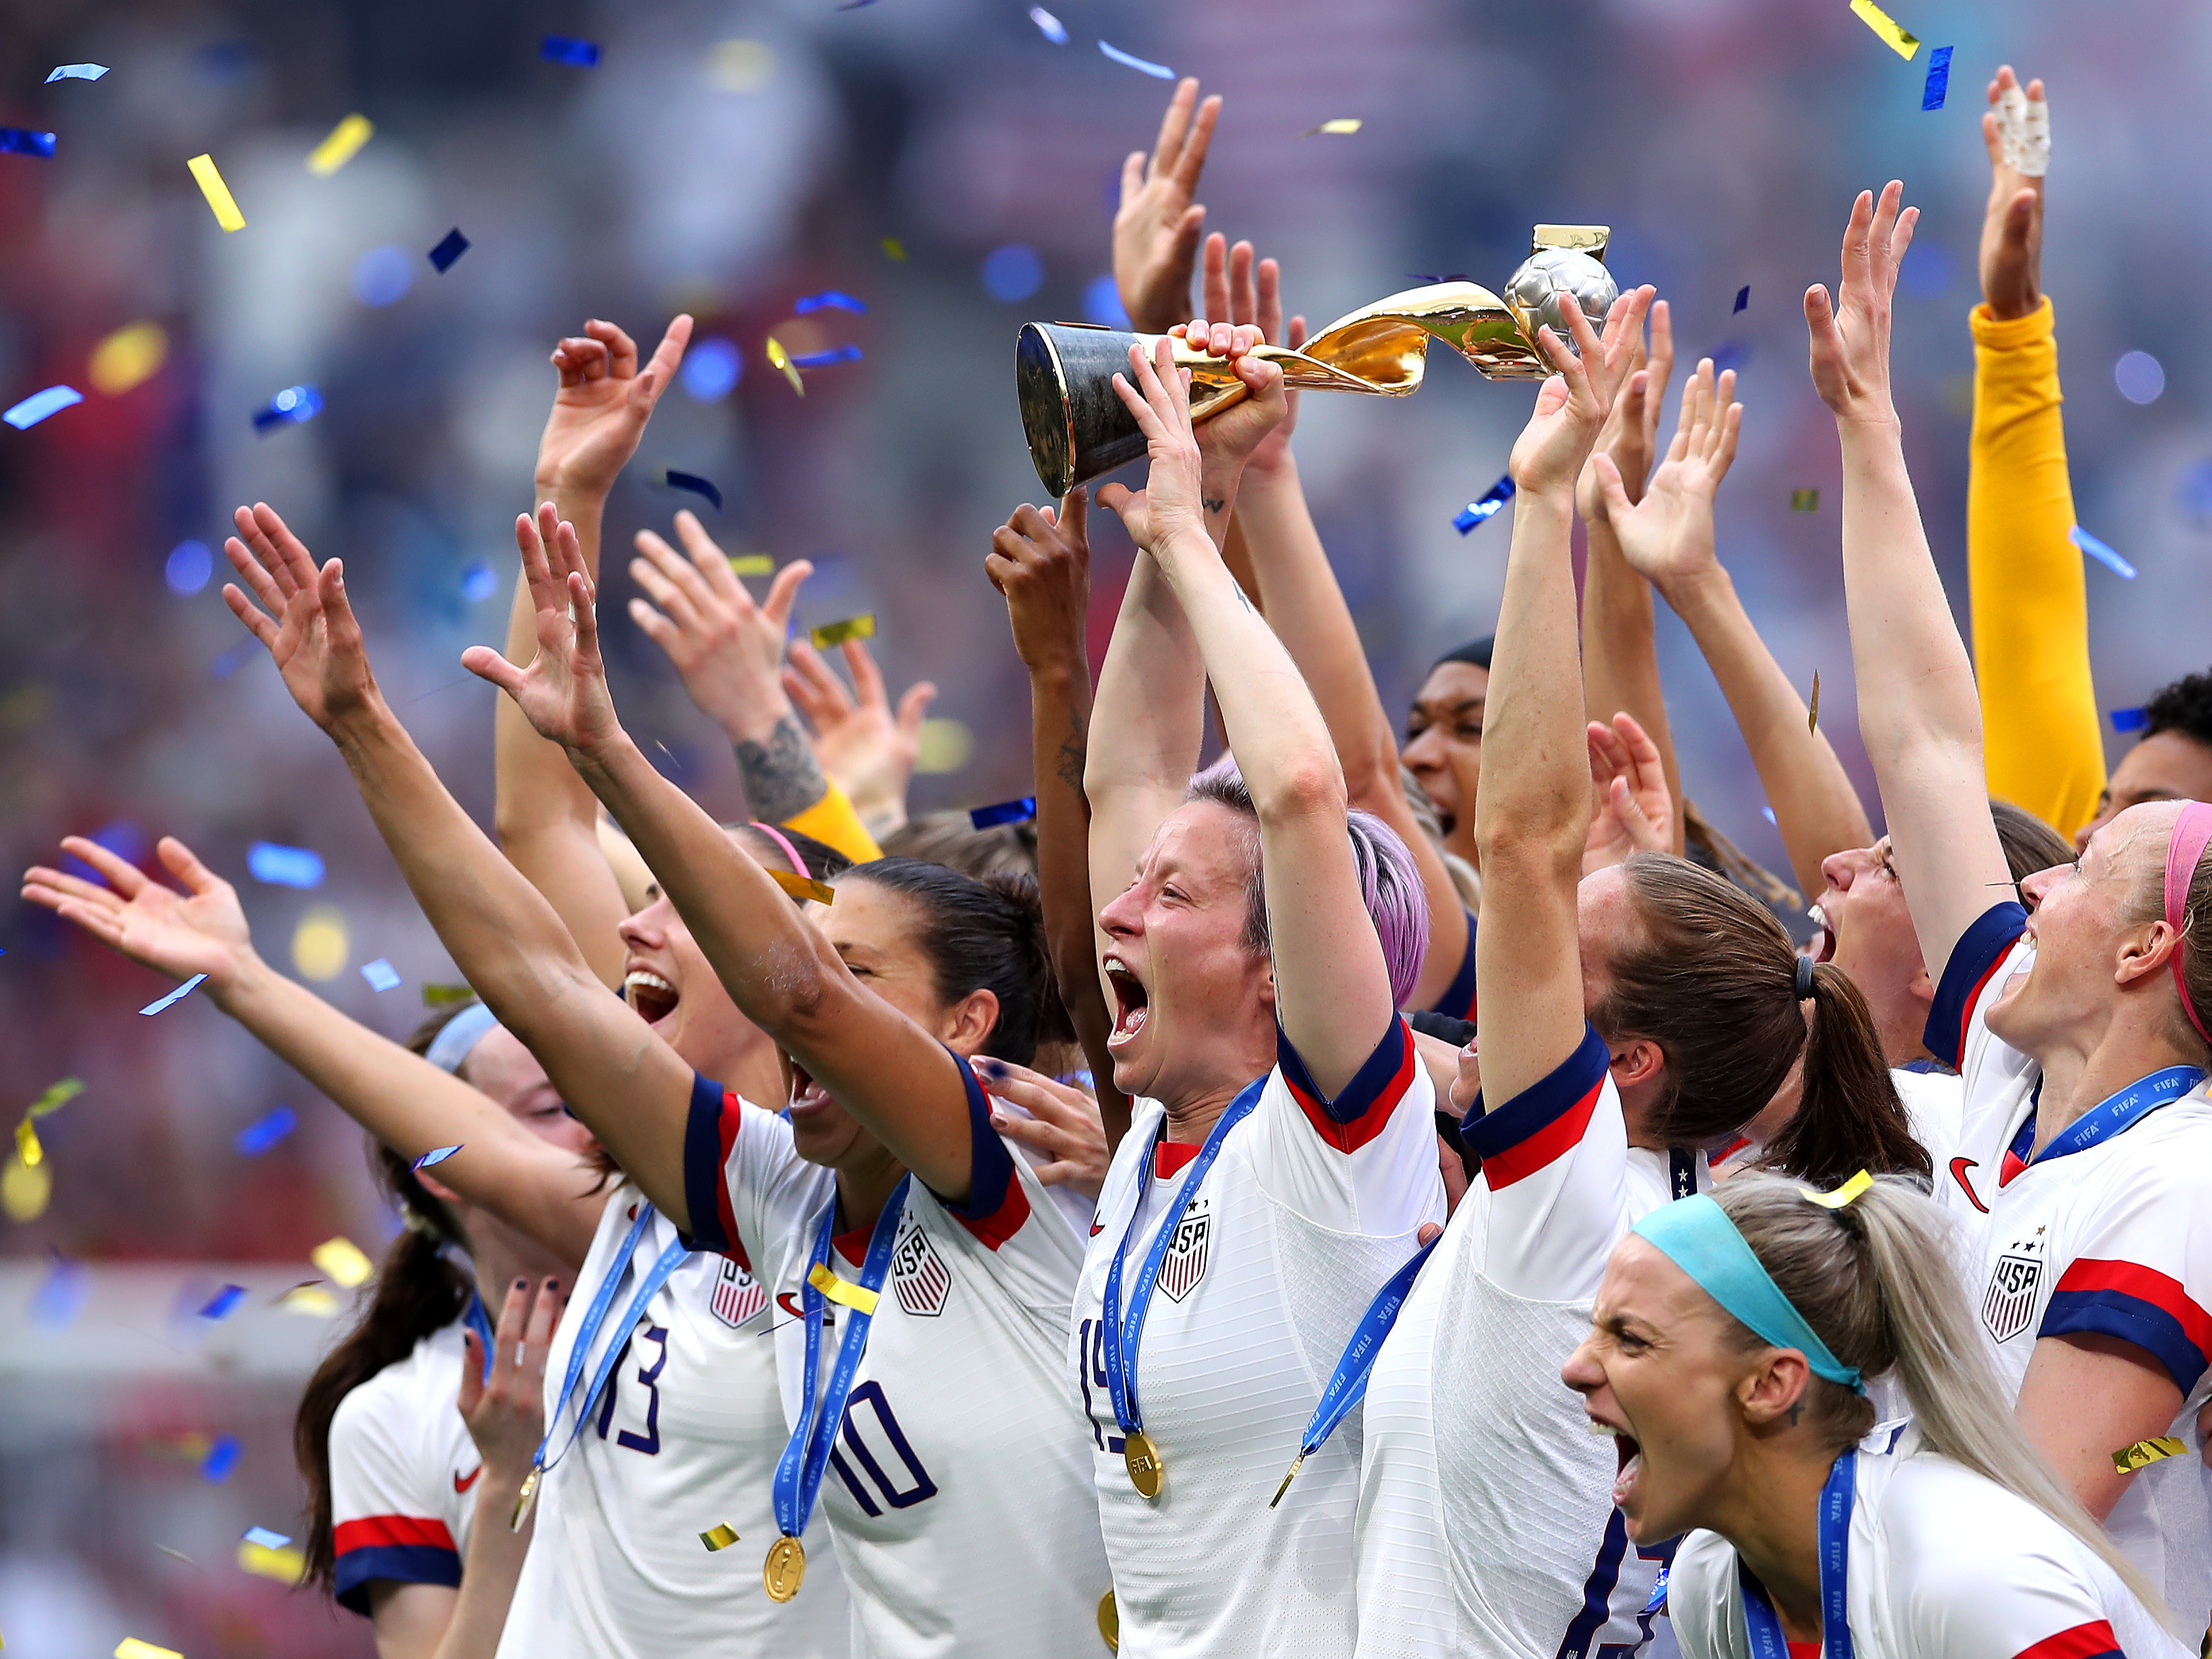 So You've Become A Rabid Fan Of Women's Soccer. Now What?